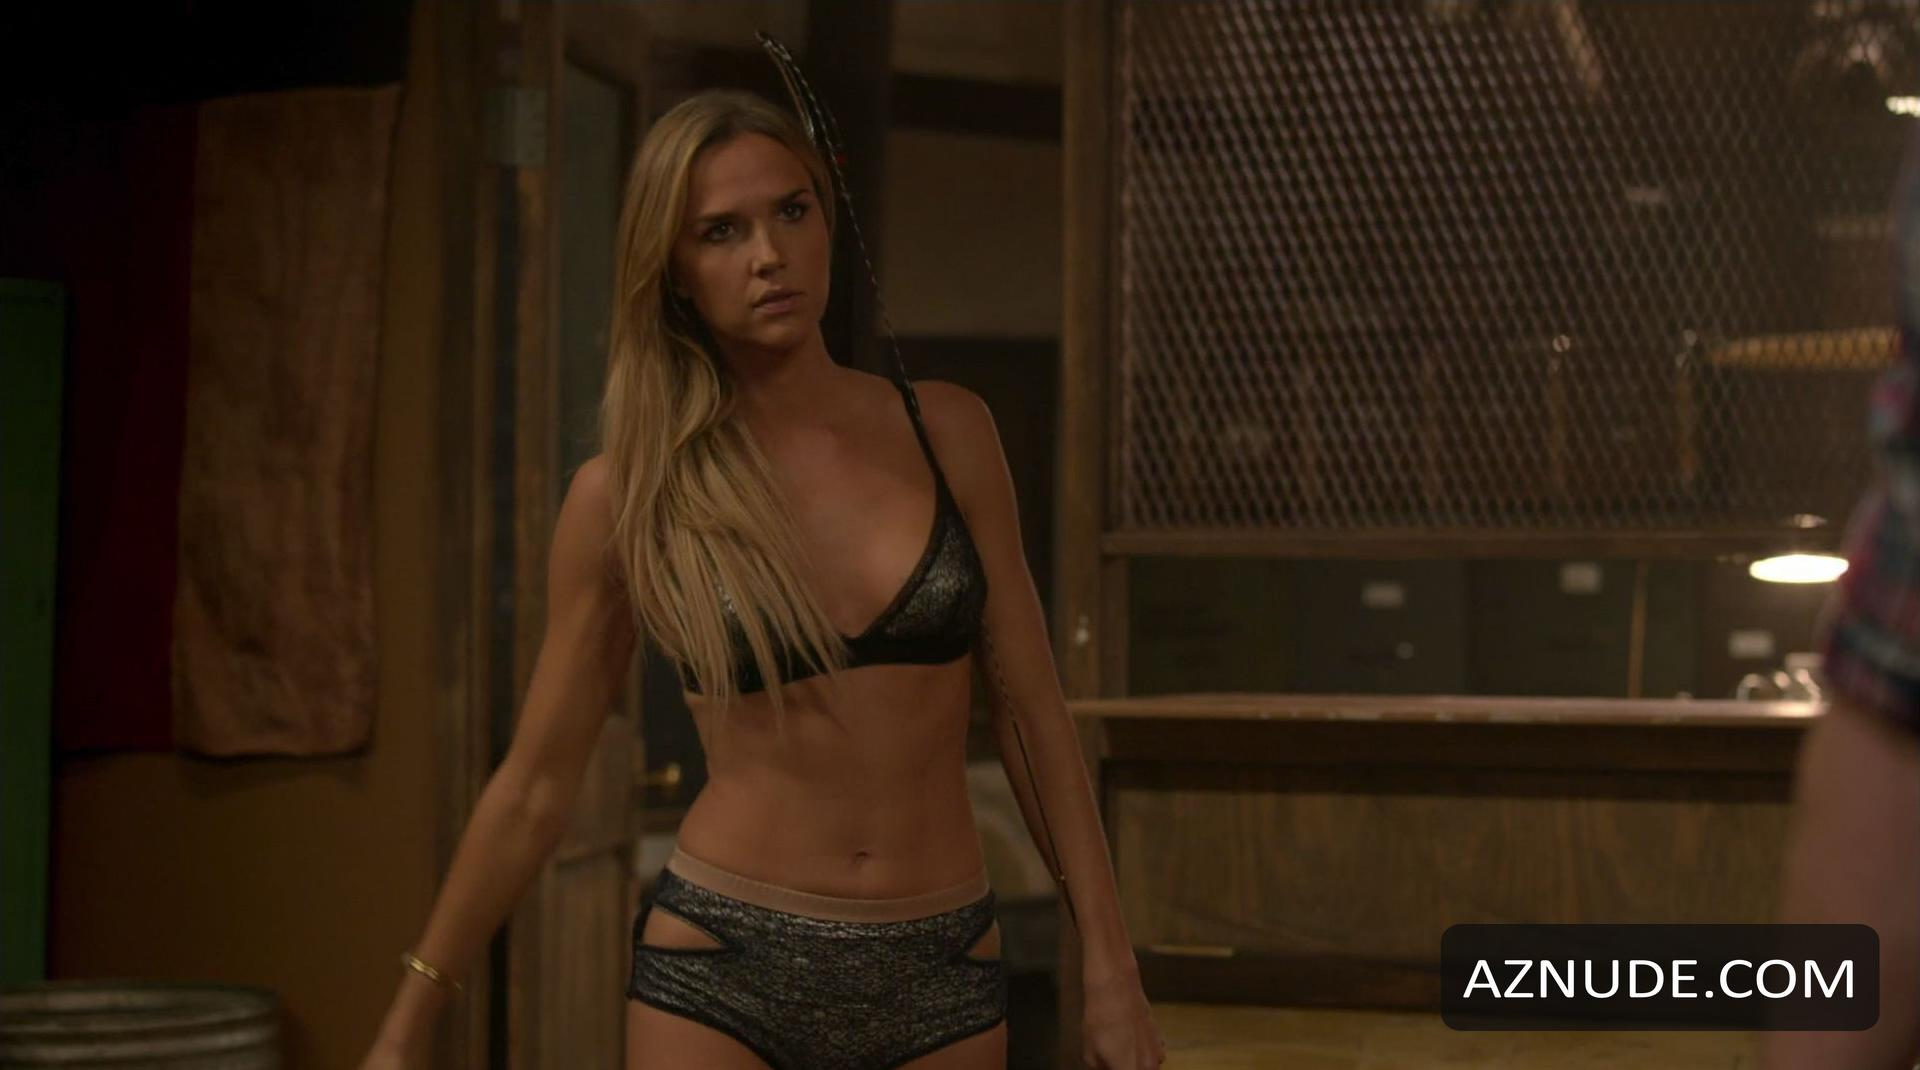 Arielle Kebbel Nude - Naked Pics and Sex Scenes at Mr. Skin